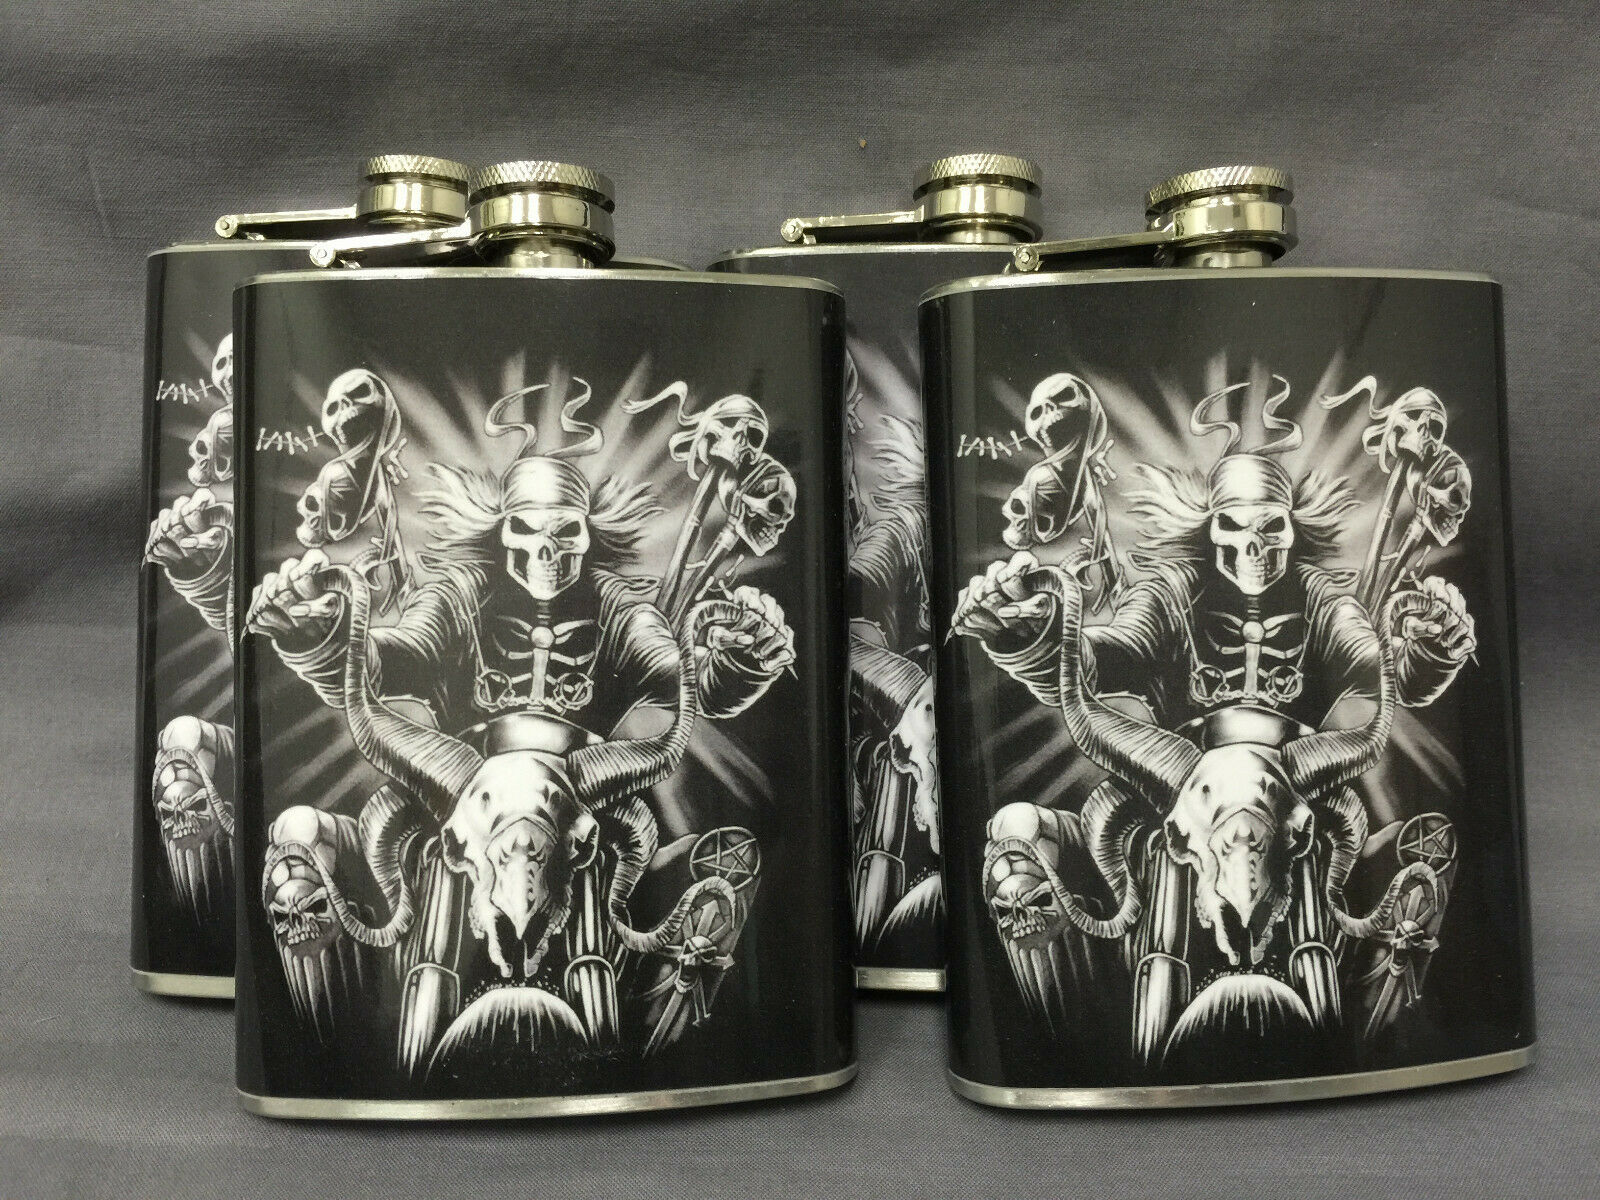 Set of 4 Skull D7 Flasks 8oz Stainless Steel Drinking Whiskey